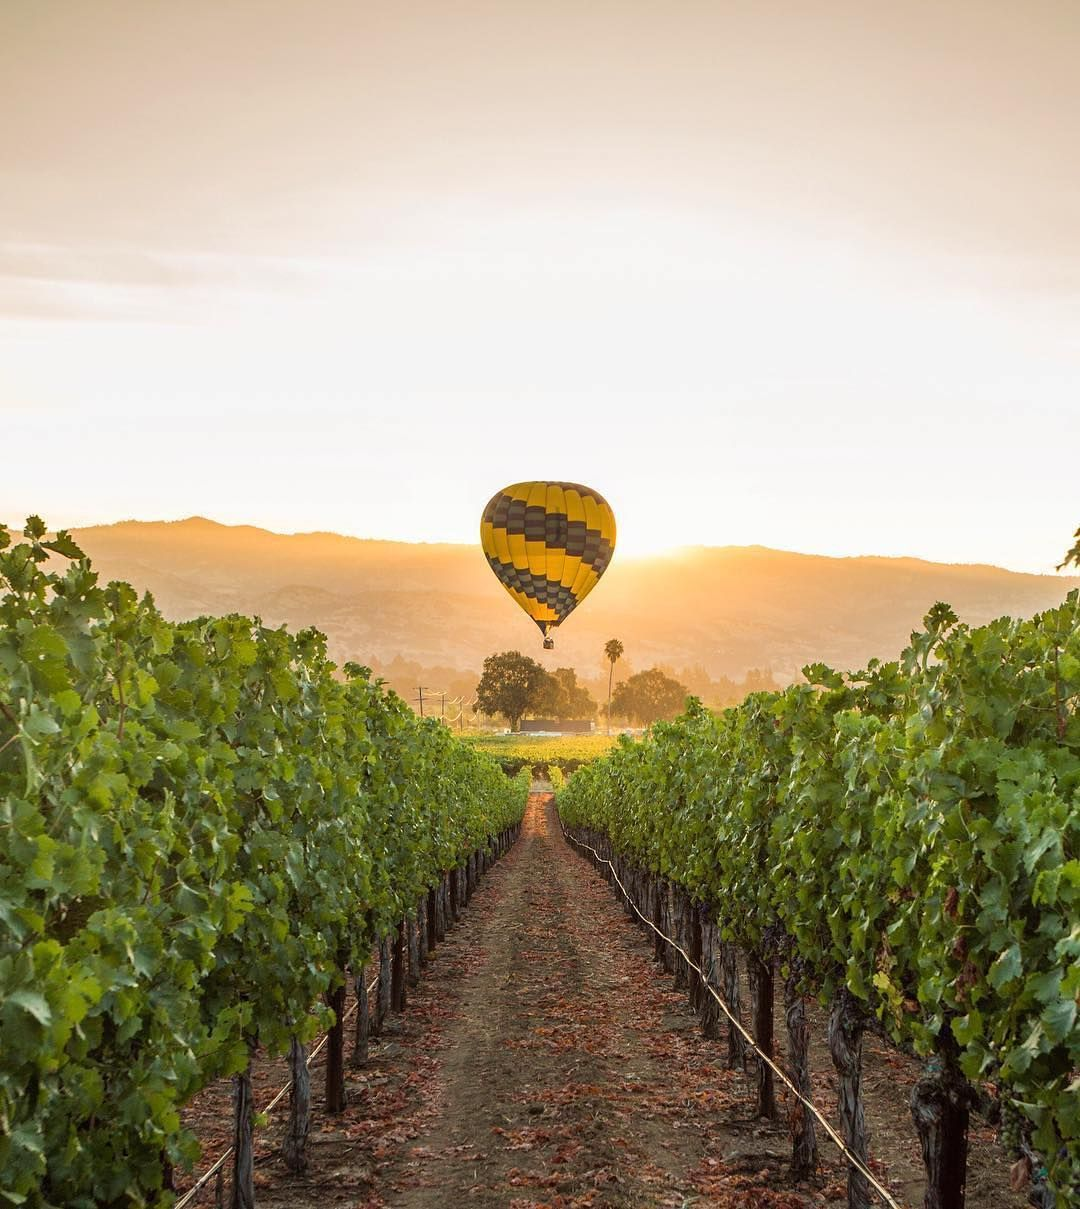 a hot air balloon over vineyards in Napa Valley